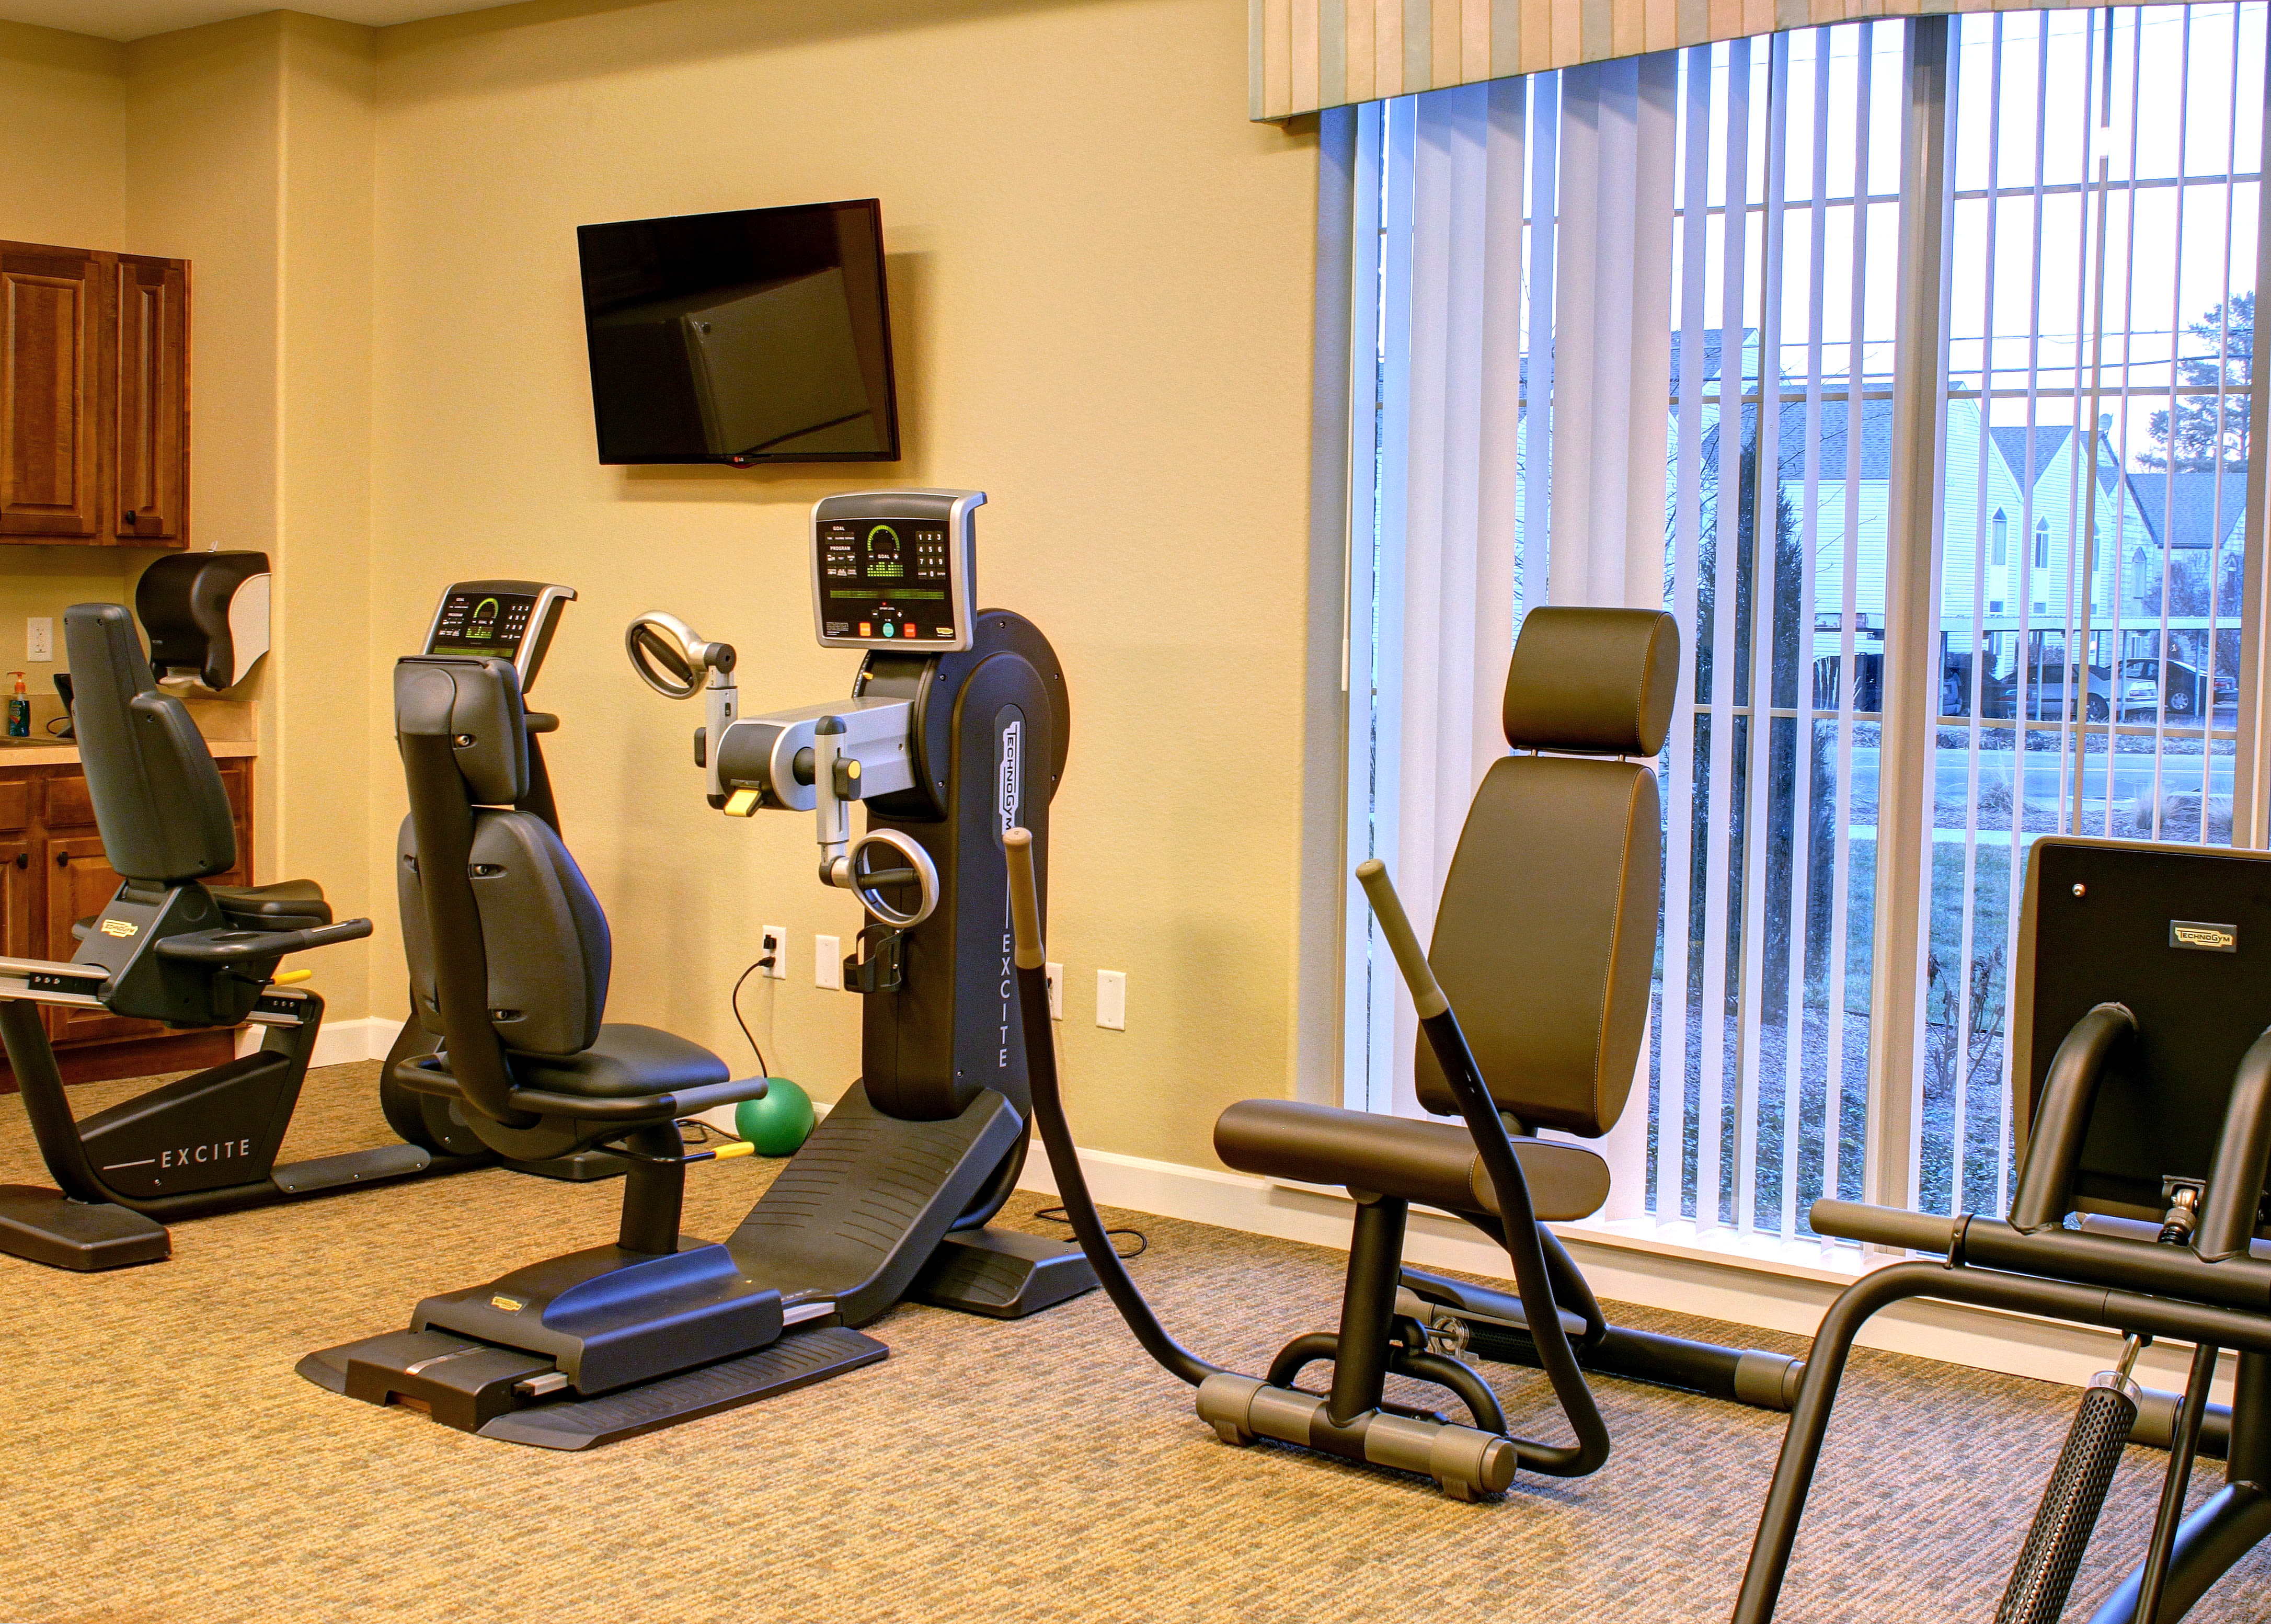 Exercise Equipment at HighPointe